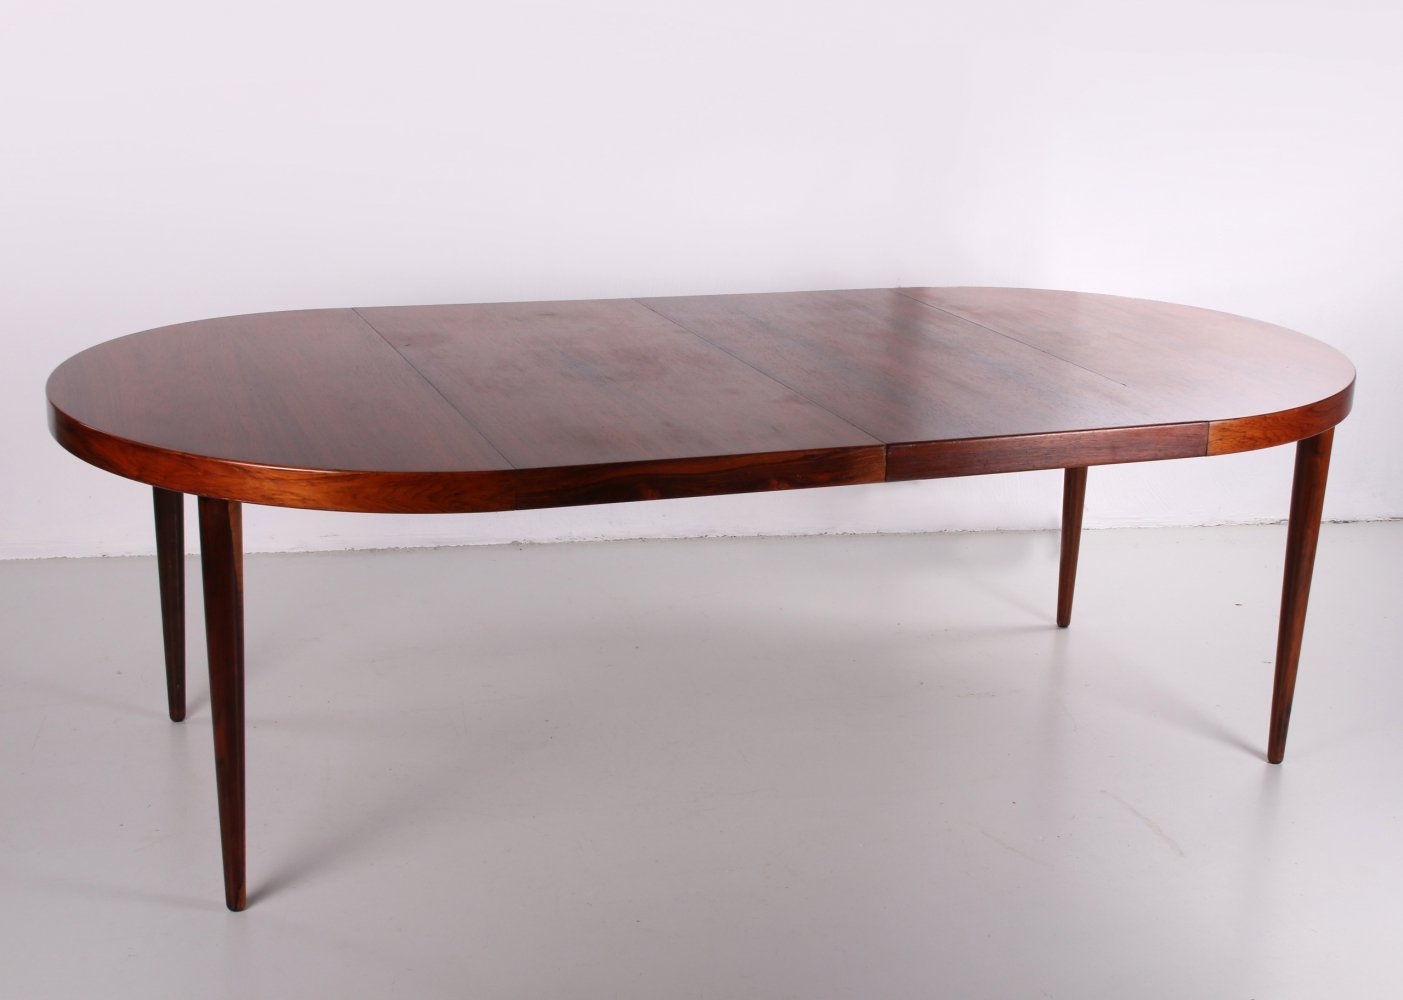 Expendable oval rosewood model 331/10 dining table by Arne Vodder, 1960s